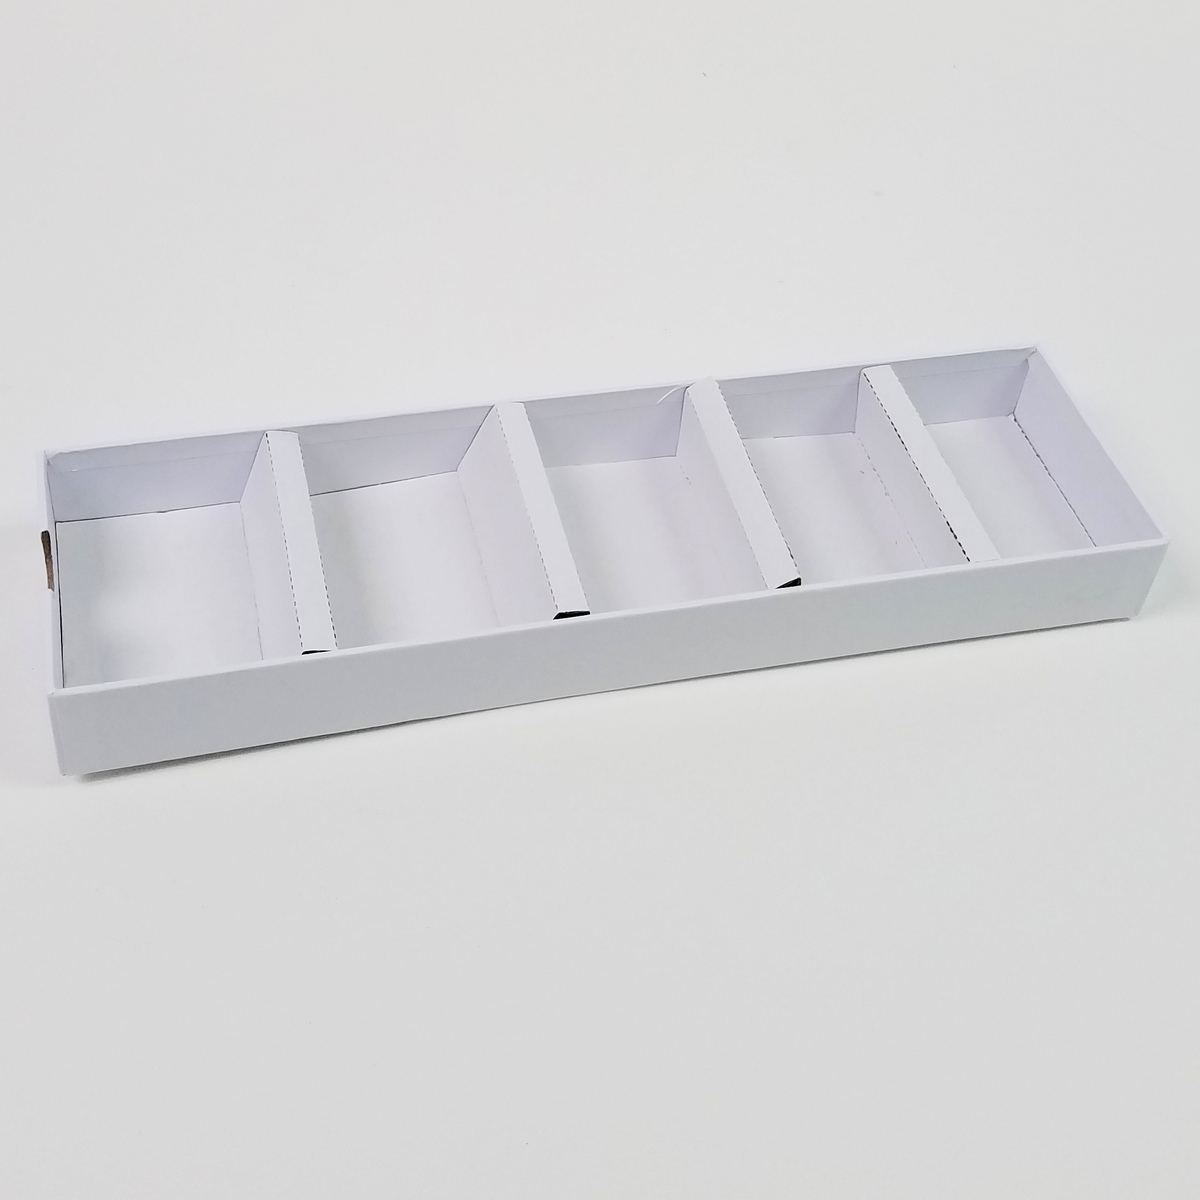 Drawers are like trays, and can be removed.